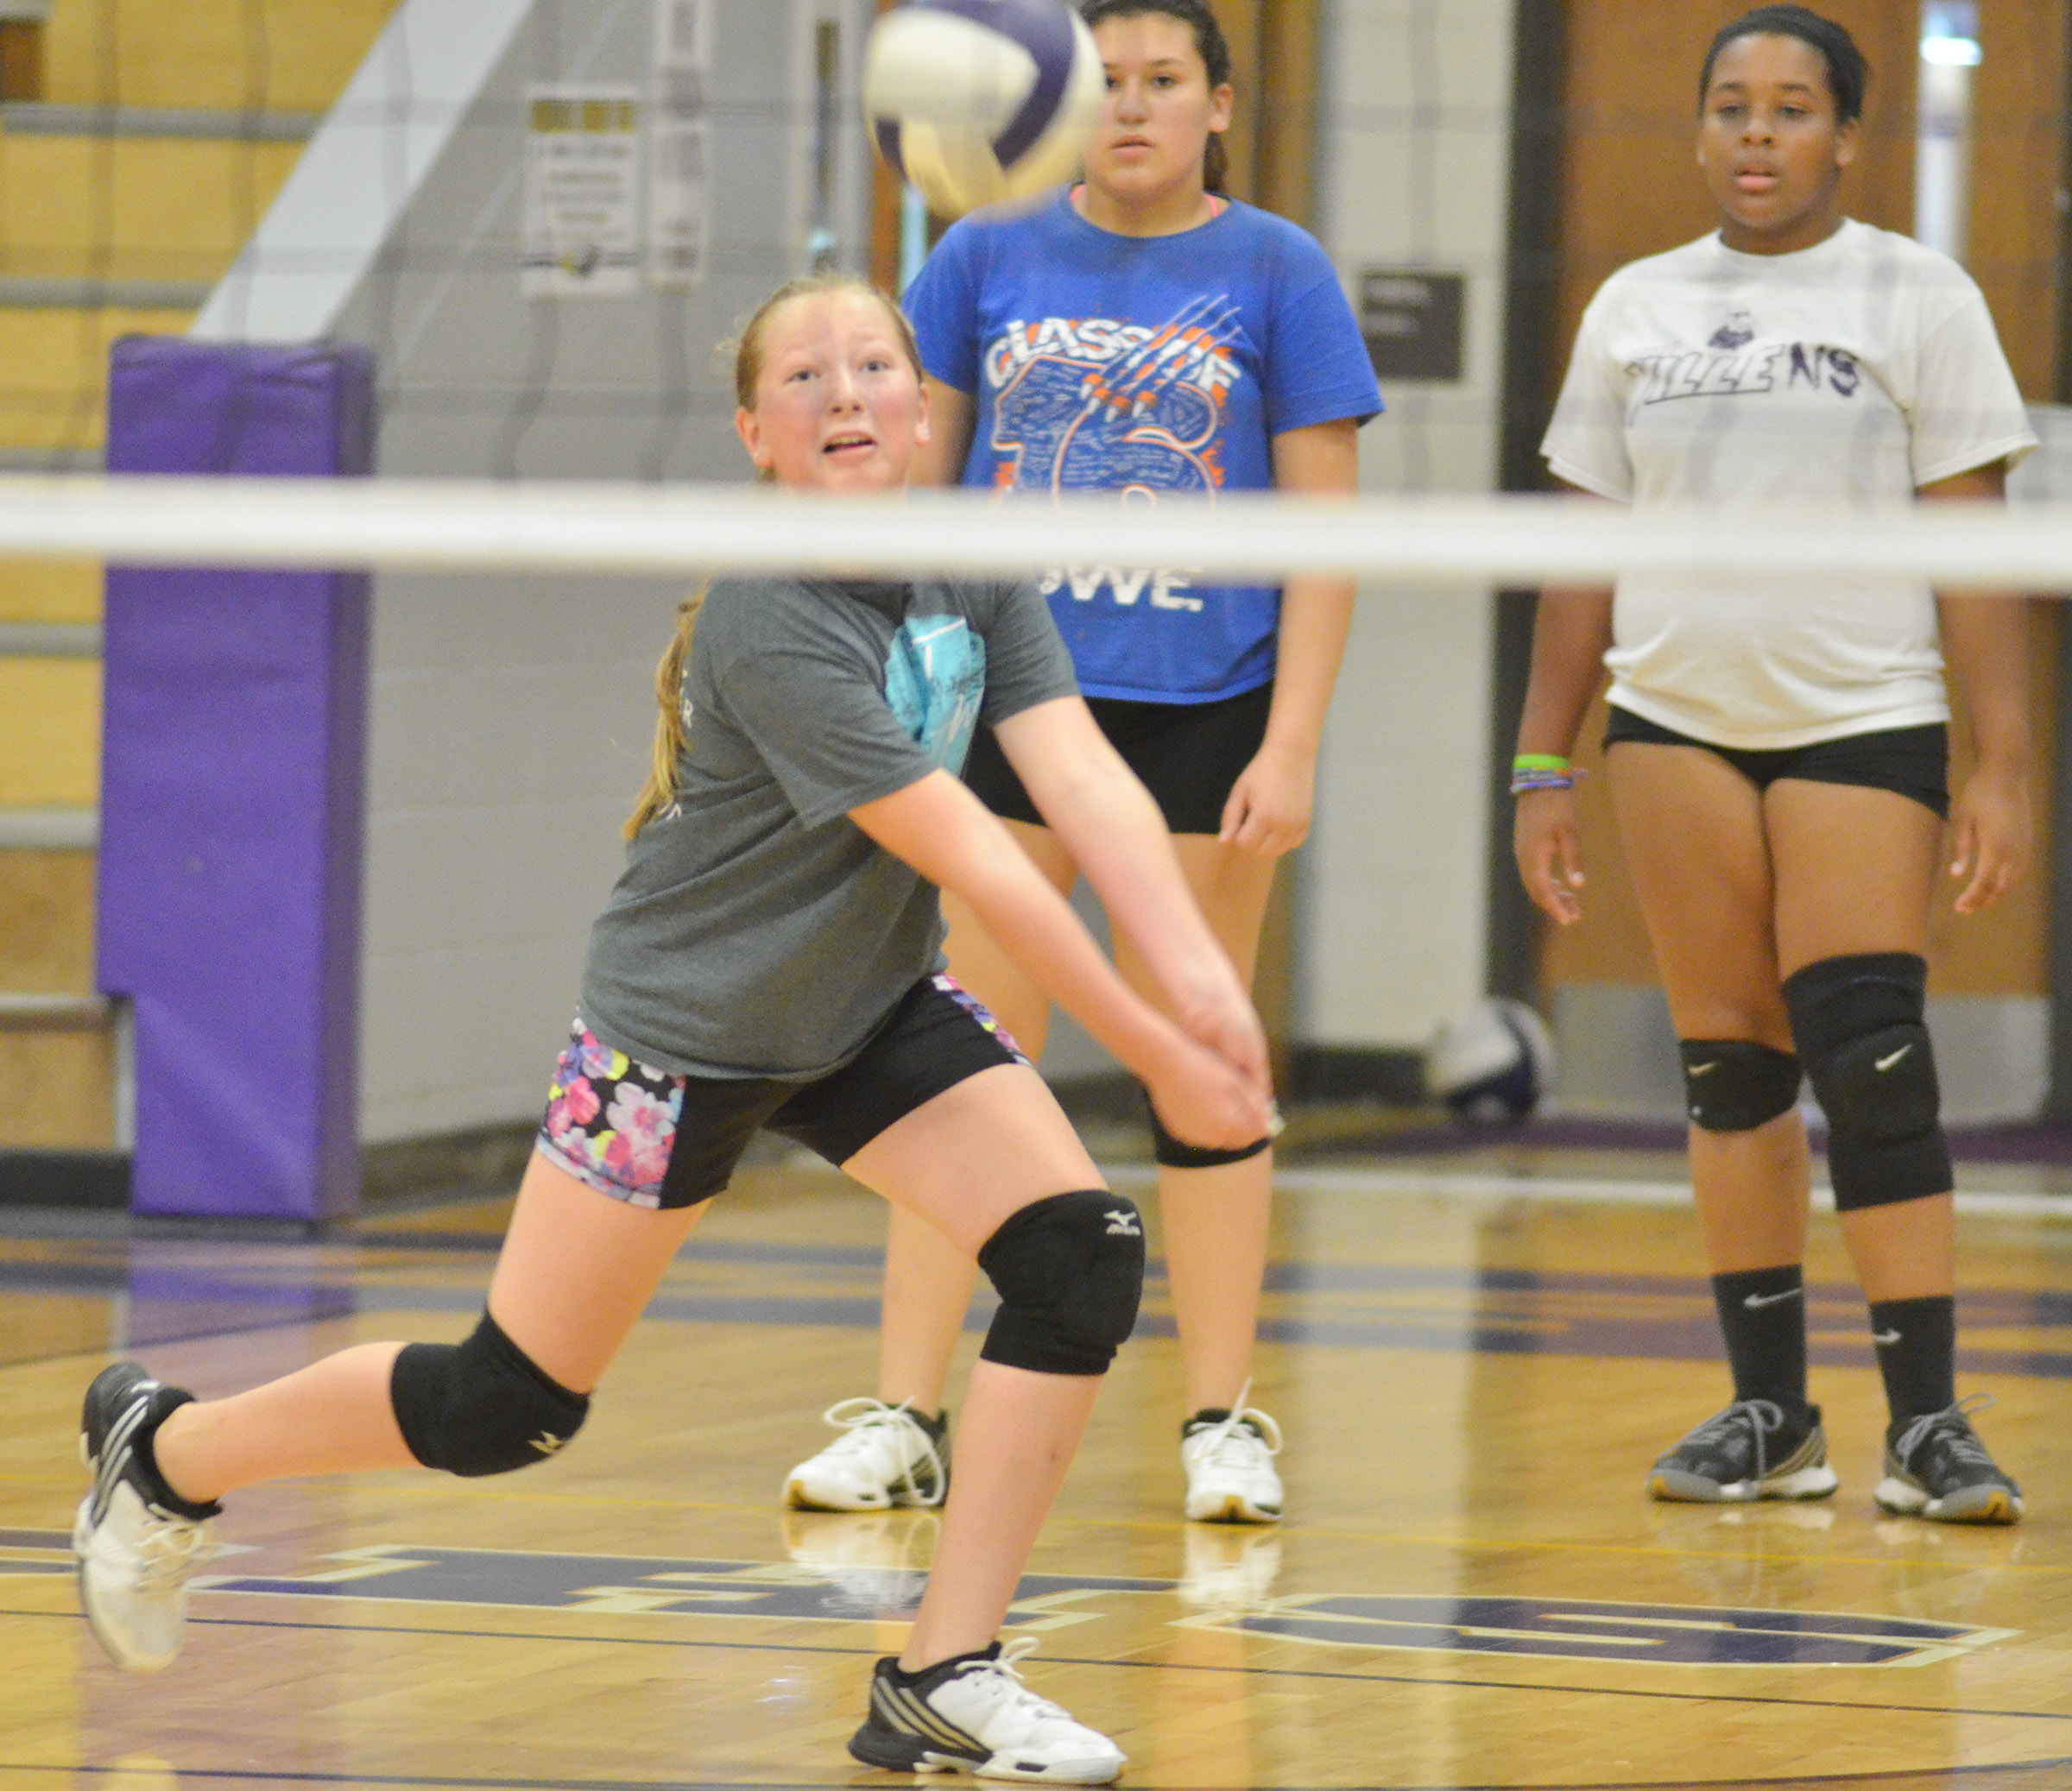 CMS sixth-grader Ava Hughes hits the ball.